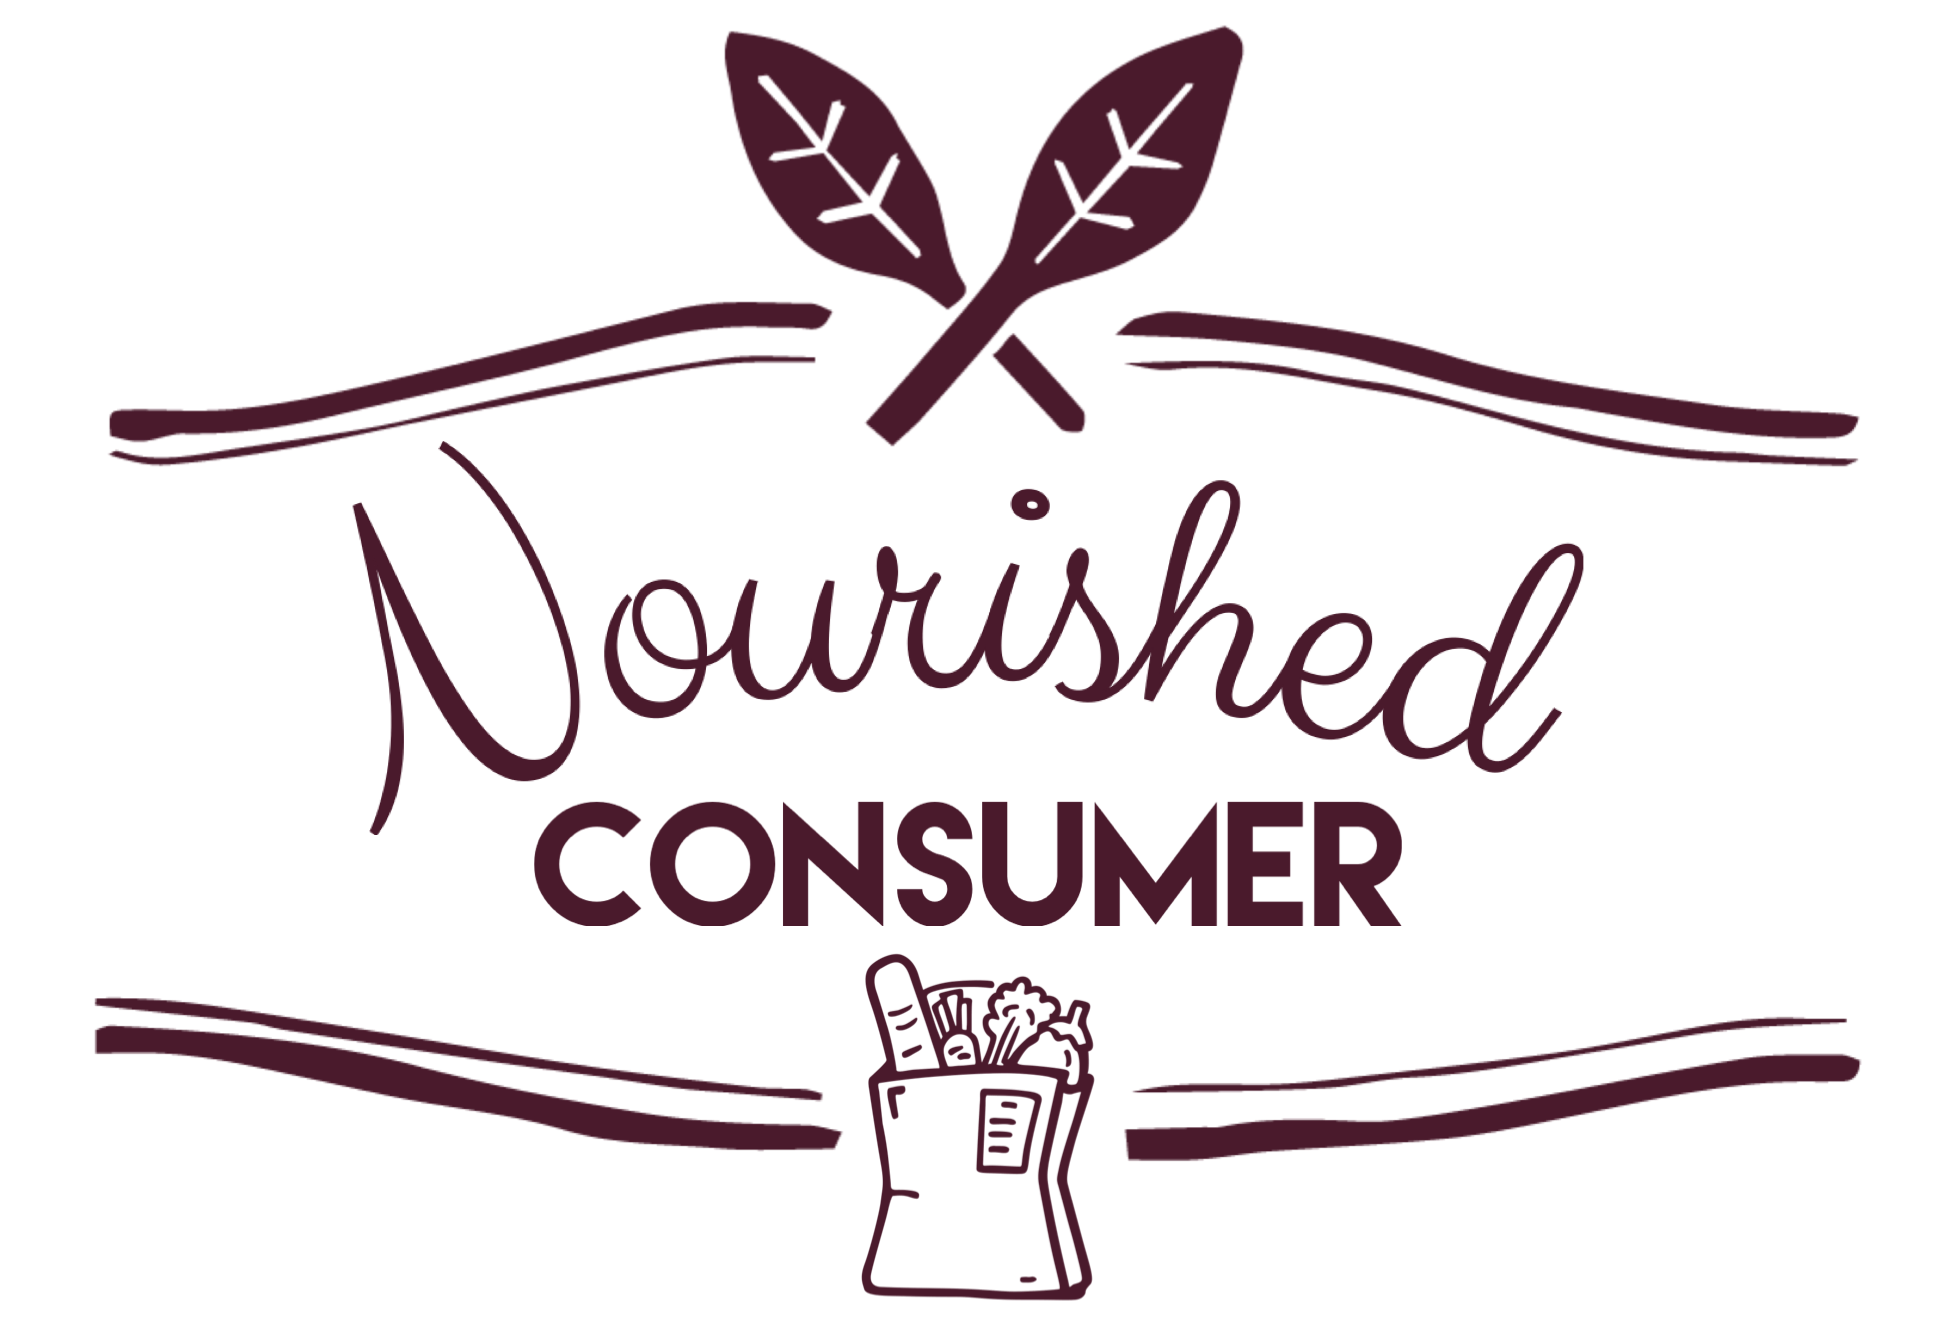 The Nourished Consumer